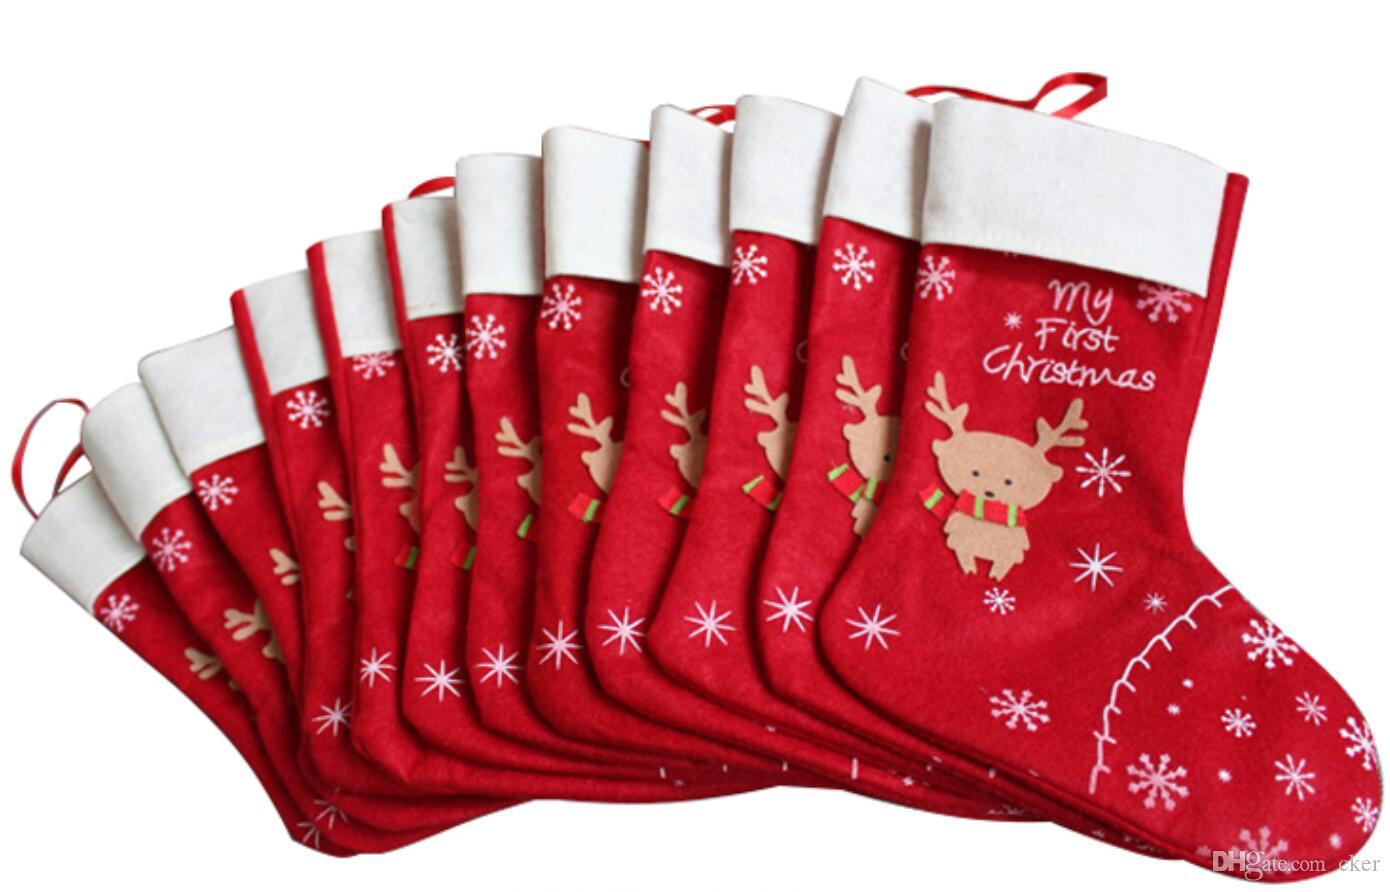 cker Merry Christmas red my First Christmas tree stand Hanging 11.8x13.7 inch Christmas deer socks Gift party decor(pack of 4)